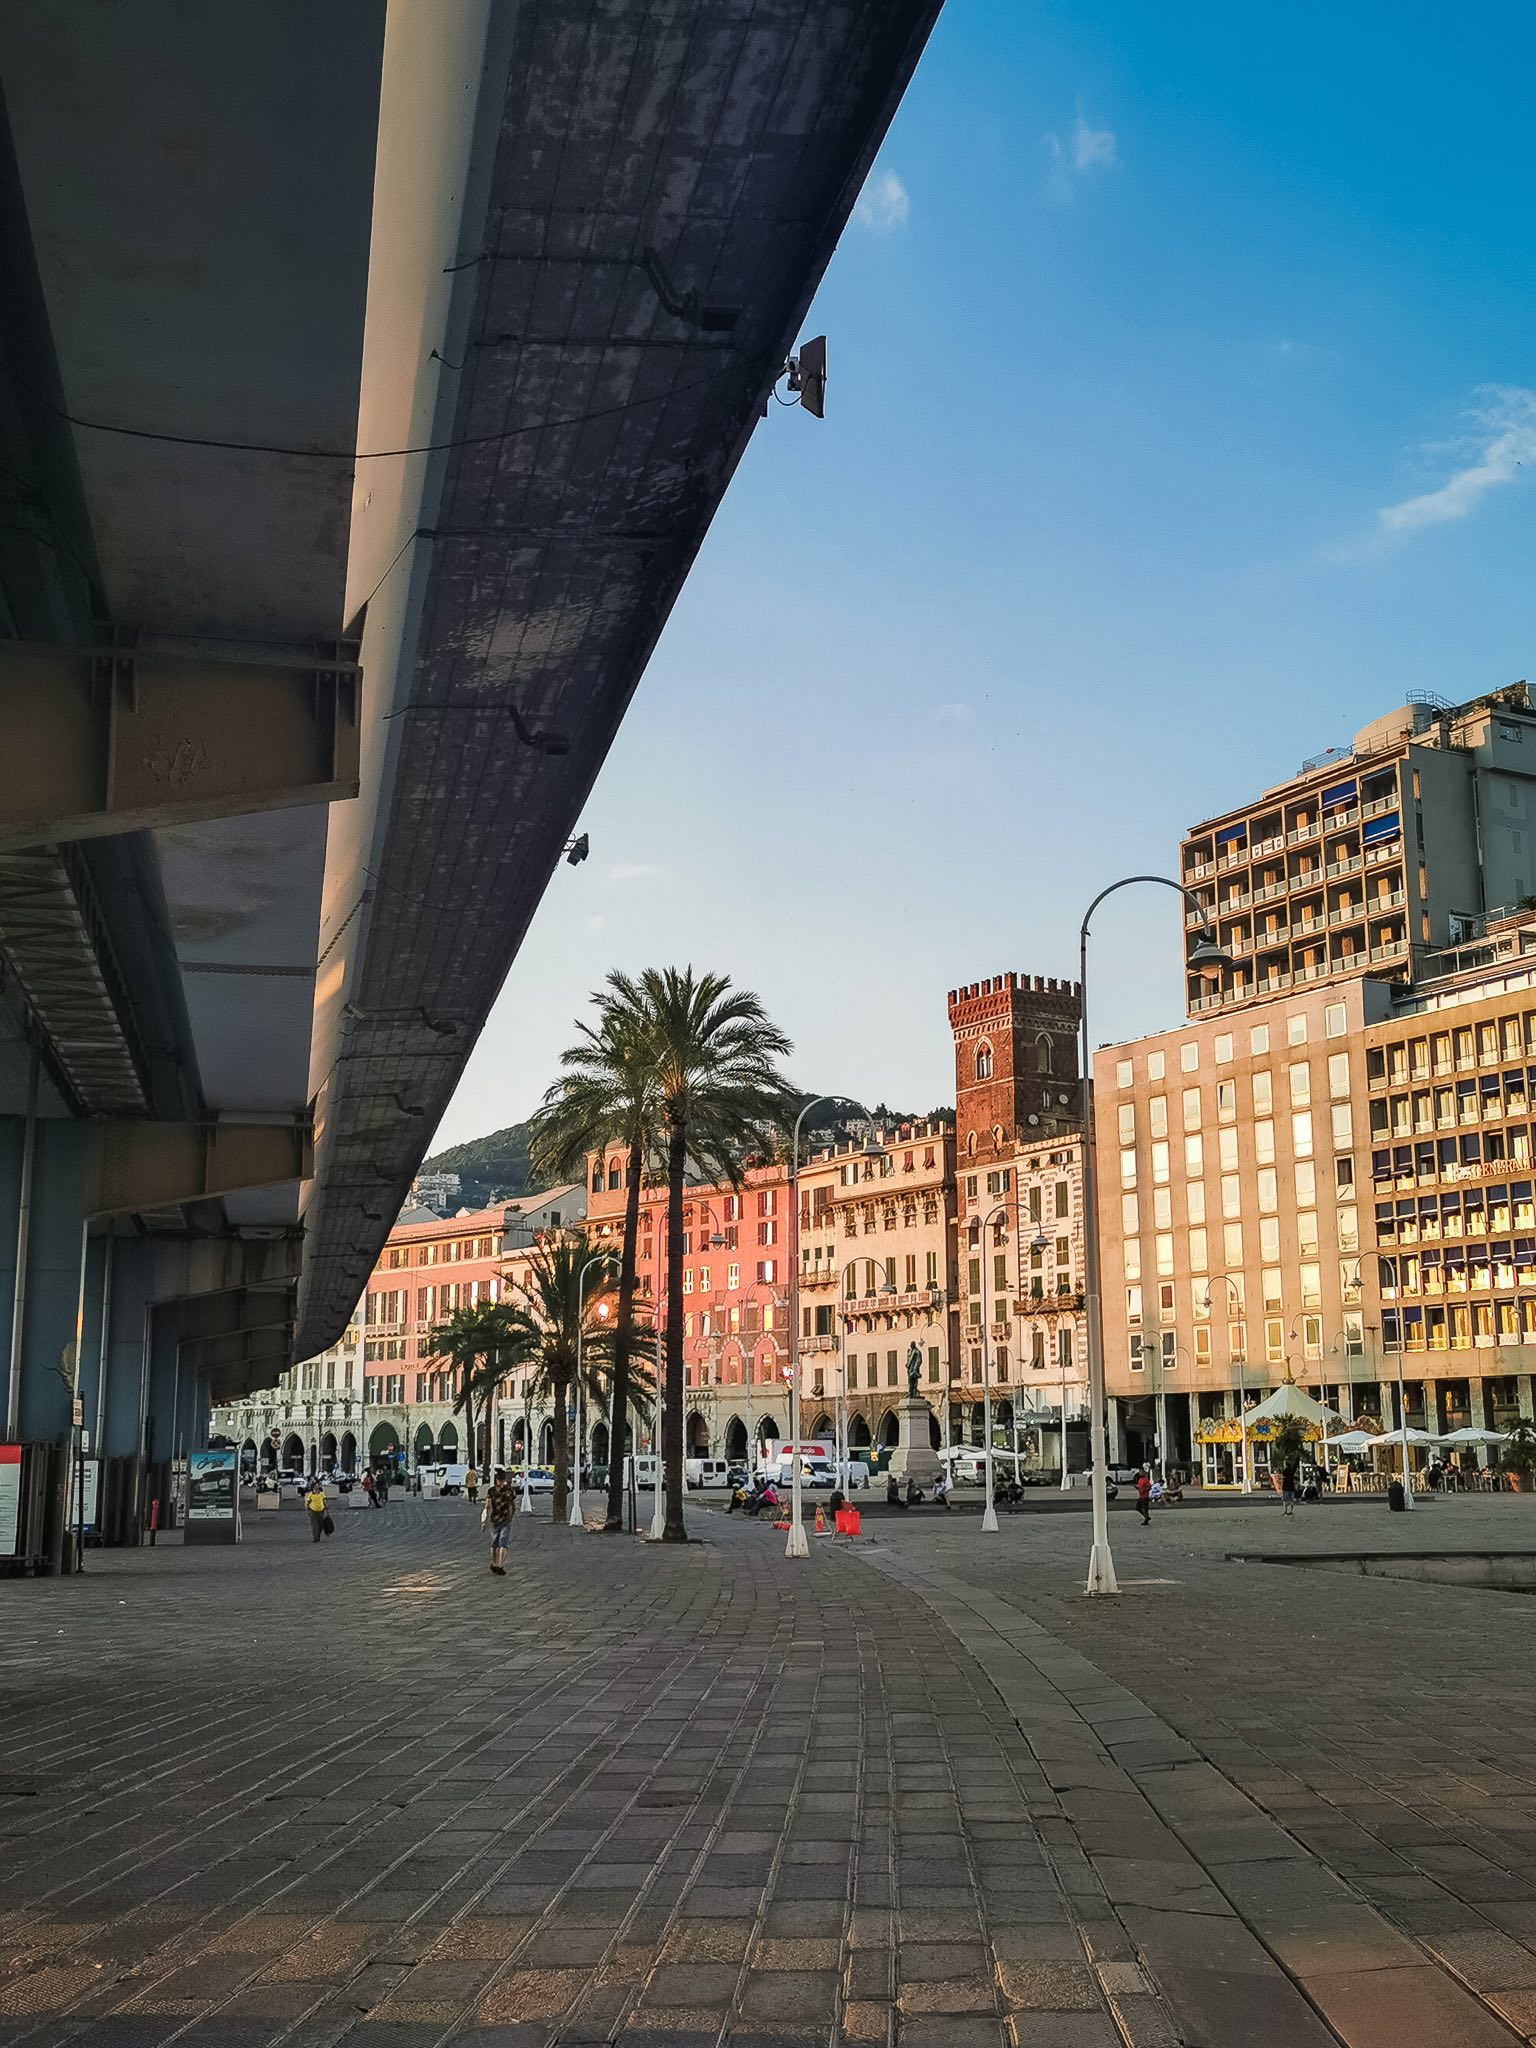 The overpass rising over the ancientport of Genoa